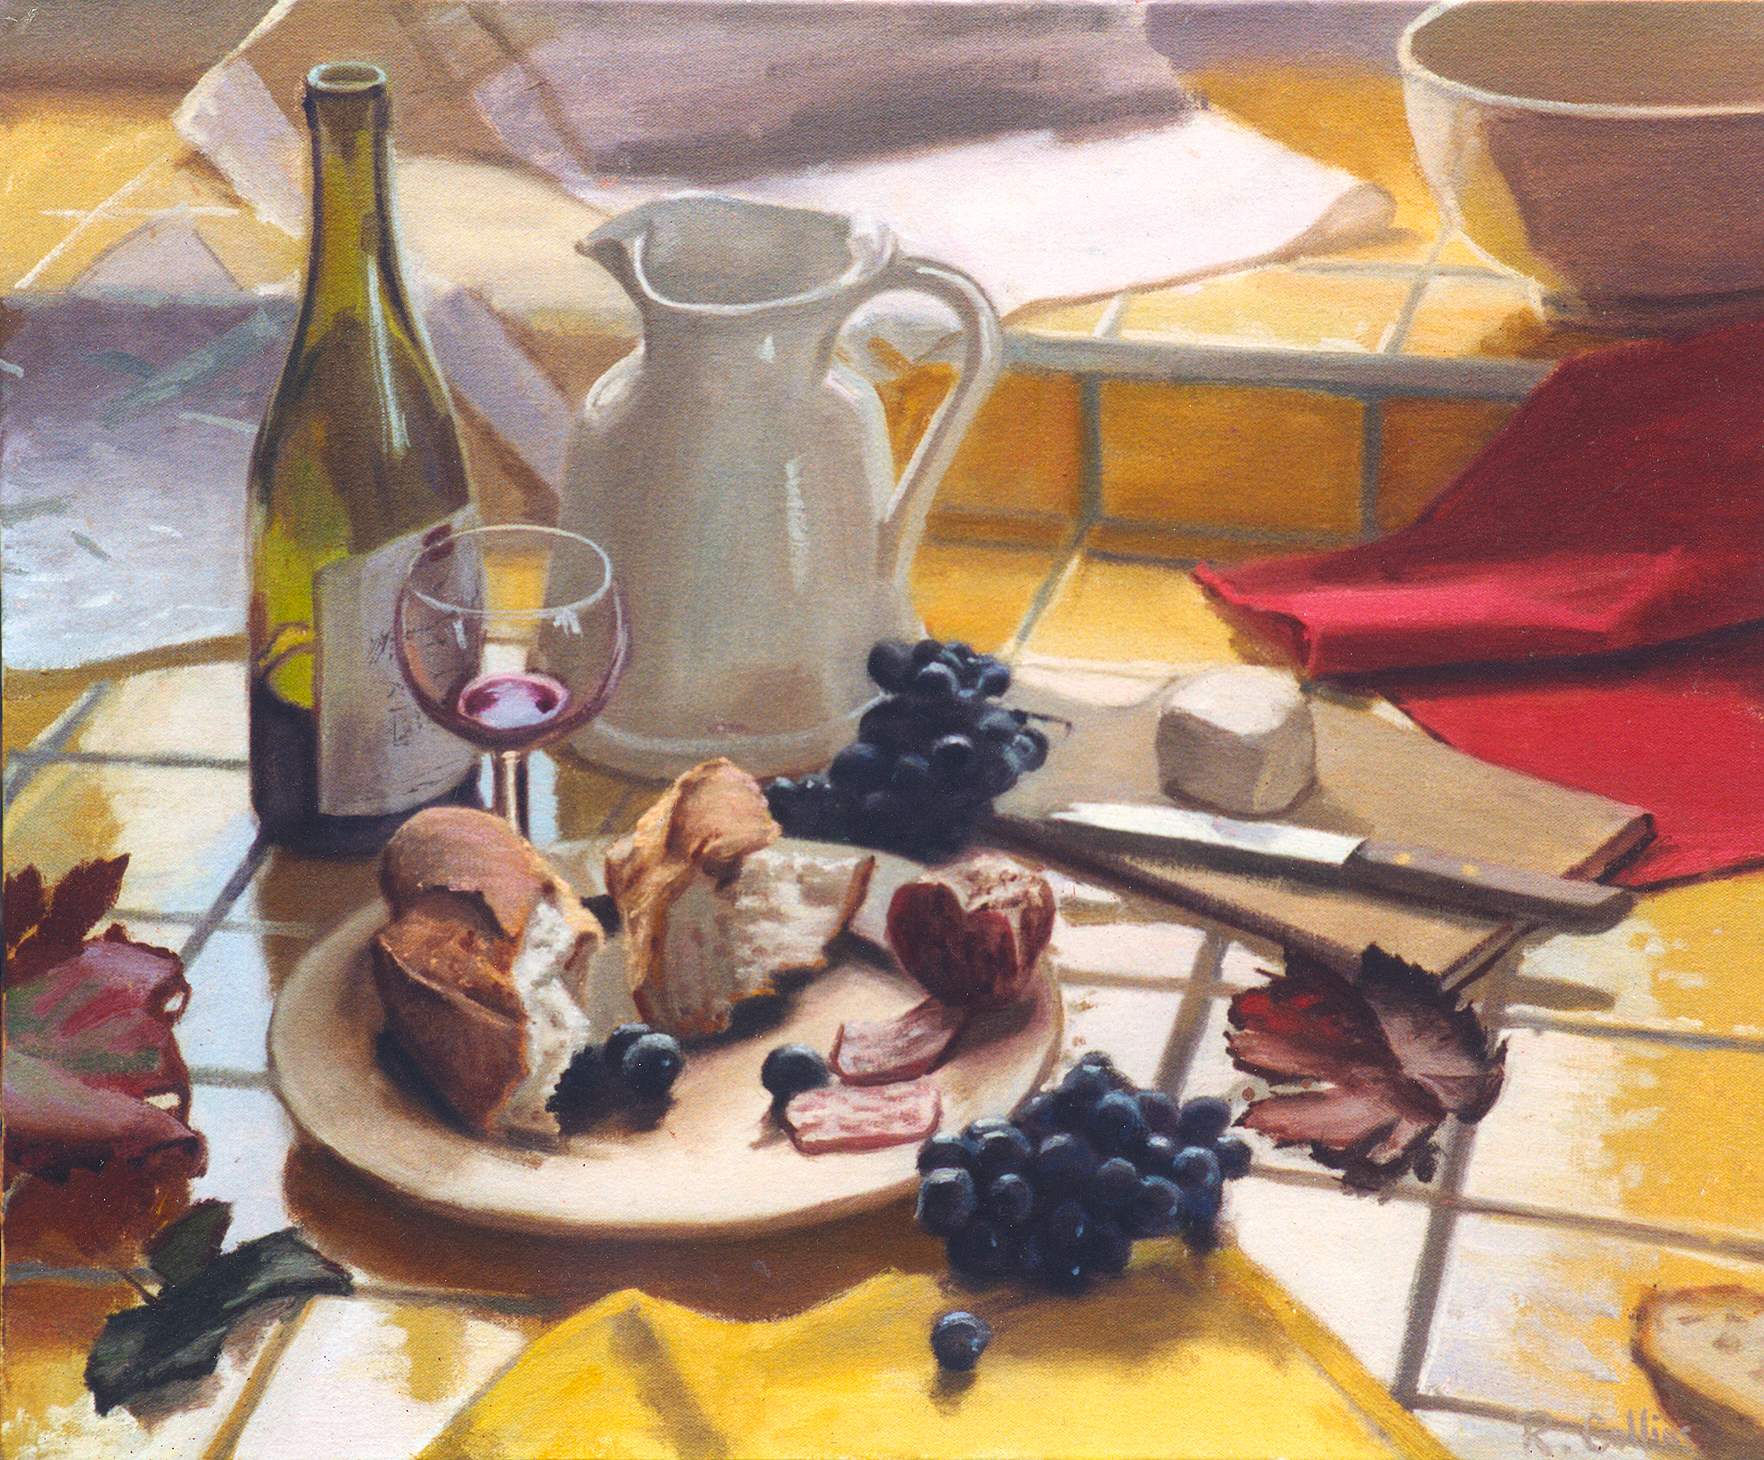 I was invited to the chateau of Lachassagne in the Beaujolais wine growing region of France to paint the wine harvest in the autumn. But there was frequent rain and dull light so I retreated indoors and using everyday things I found in the kitchen put together two still lives, this is one of them, a simple rustic lunch but a feast of colour, texture and light.